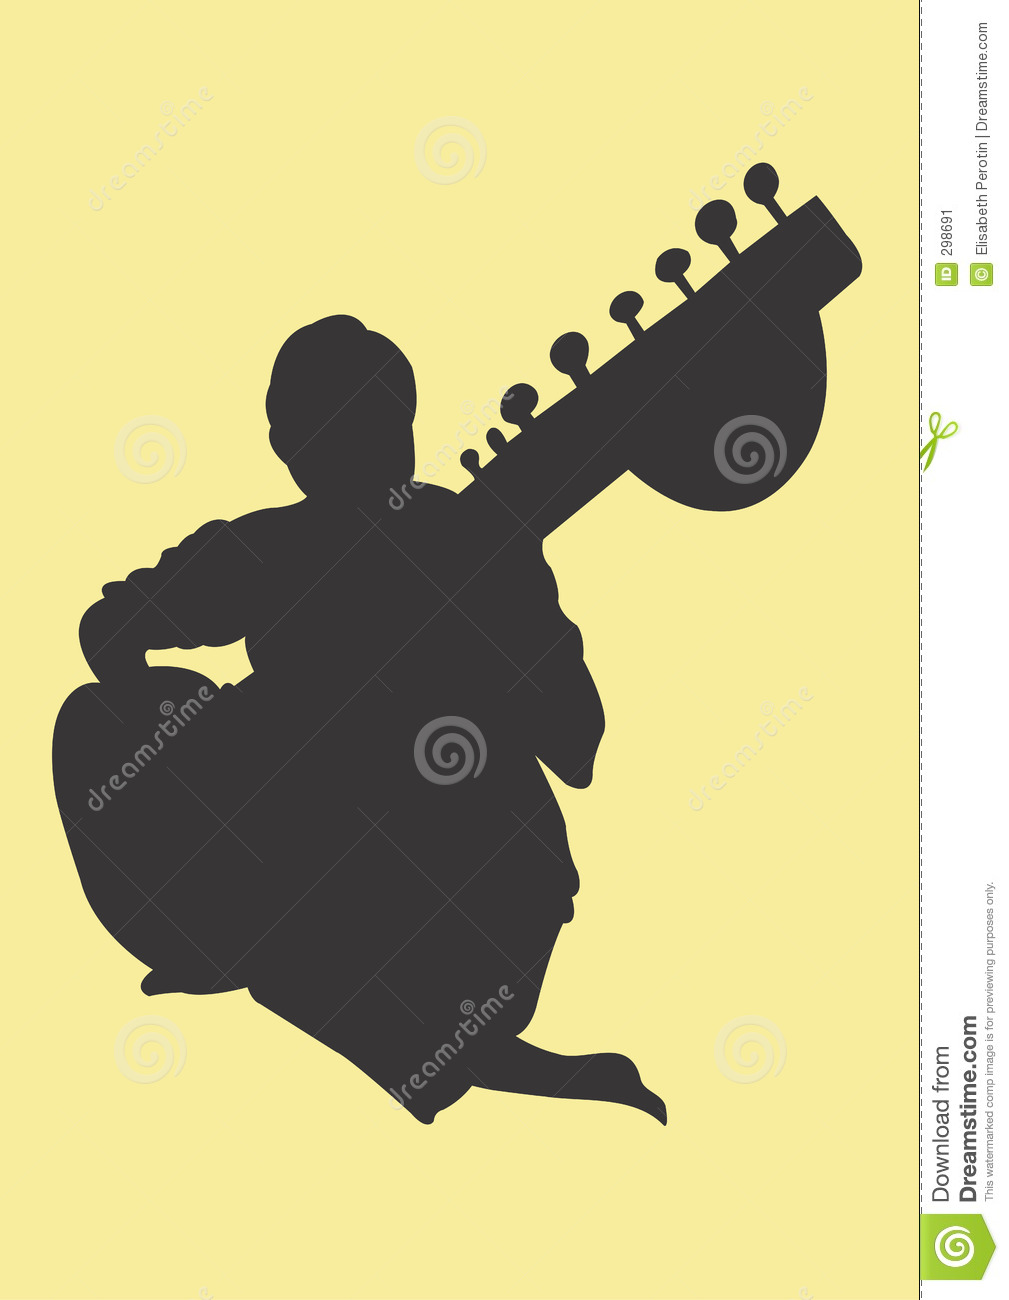 zither cartoons illustrations amp vector stock images 25